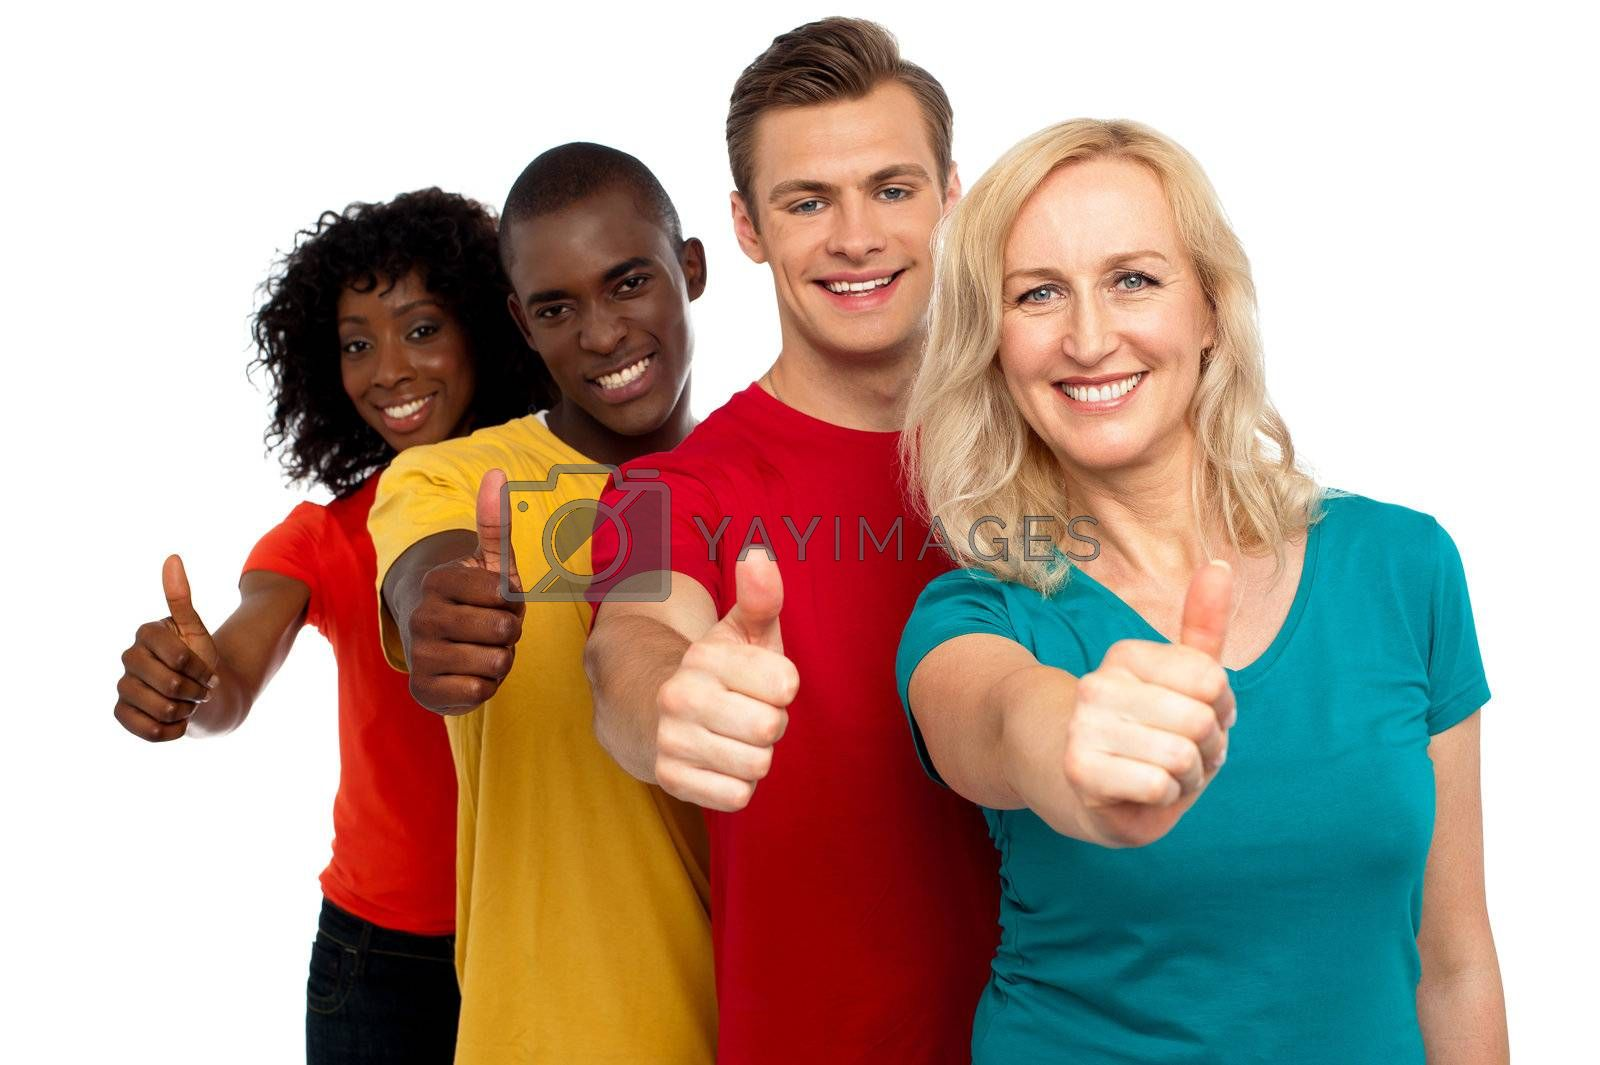 Smiling group of people with thumbs up gesture showing to camera